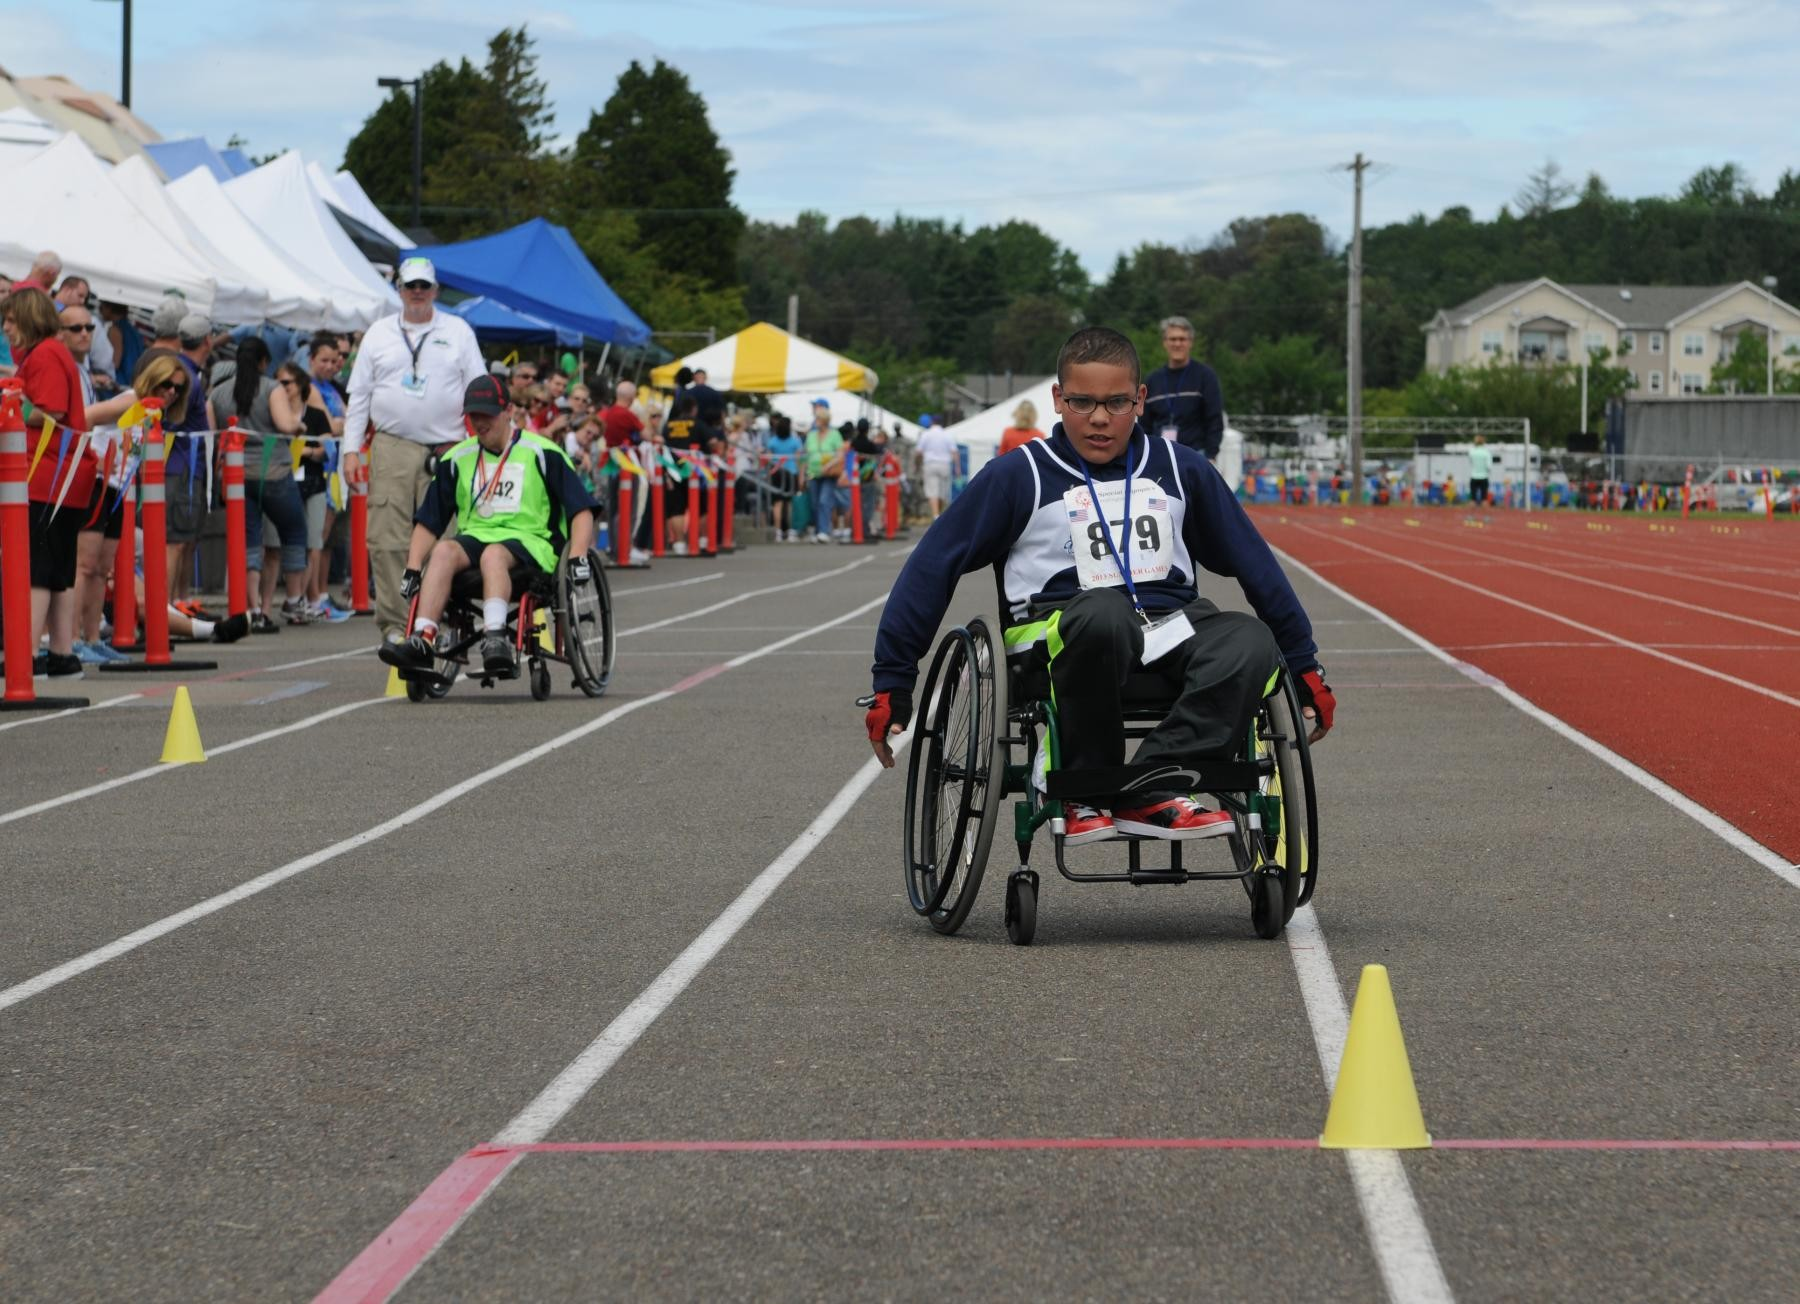 wheelchair olympics chairs for posture support lewis mcchord hosts special summer games